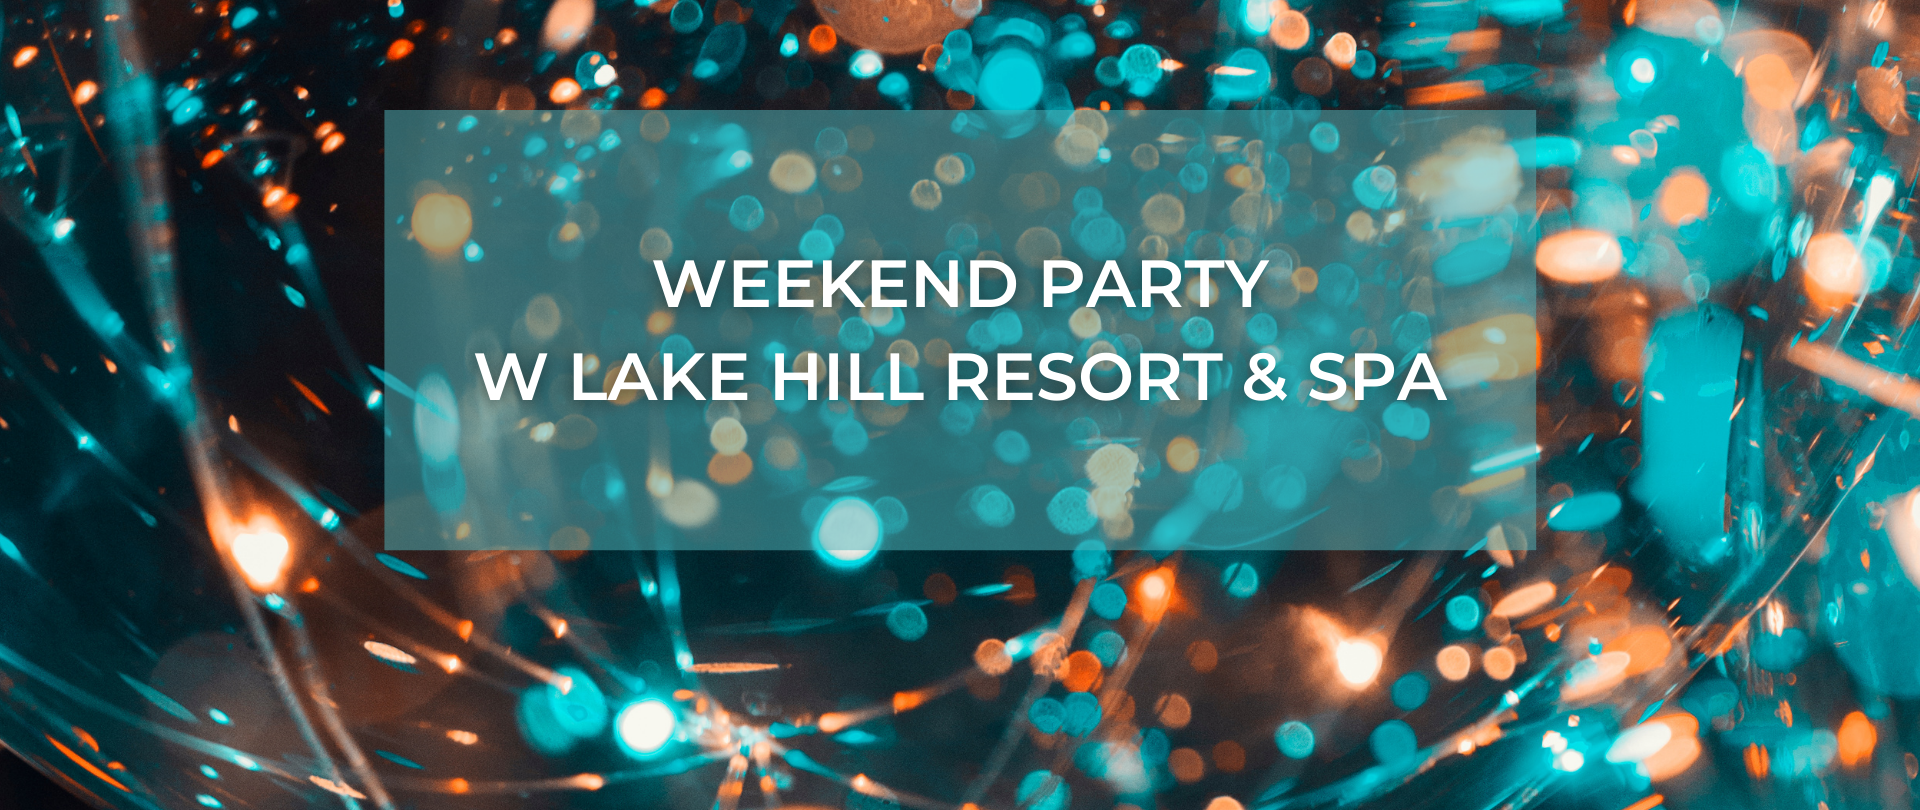 Weekend Party w Lake Hill Resort & SPA